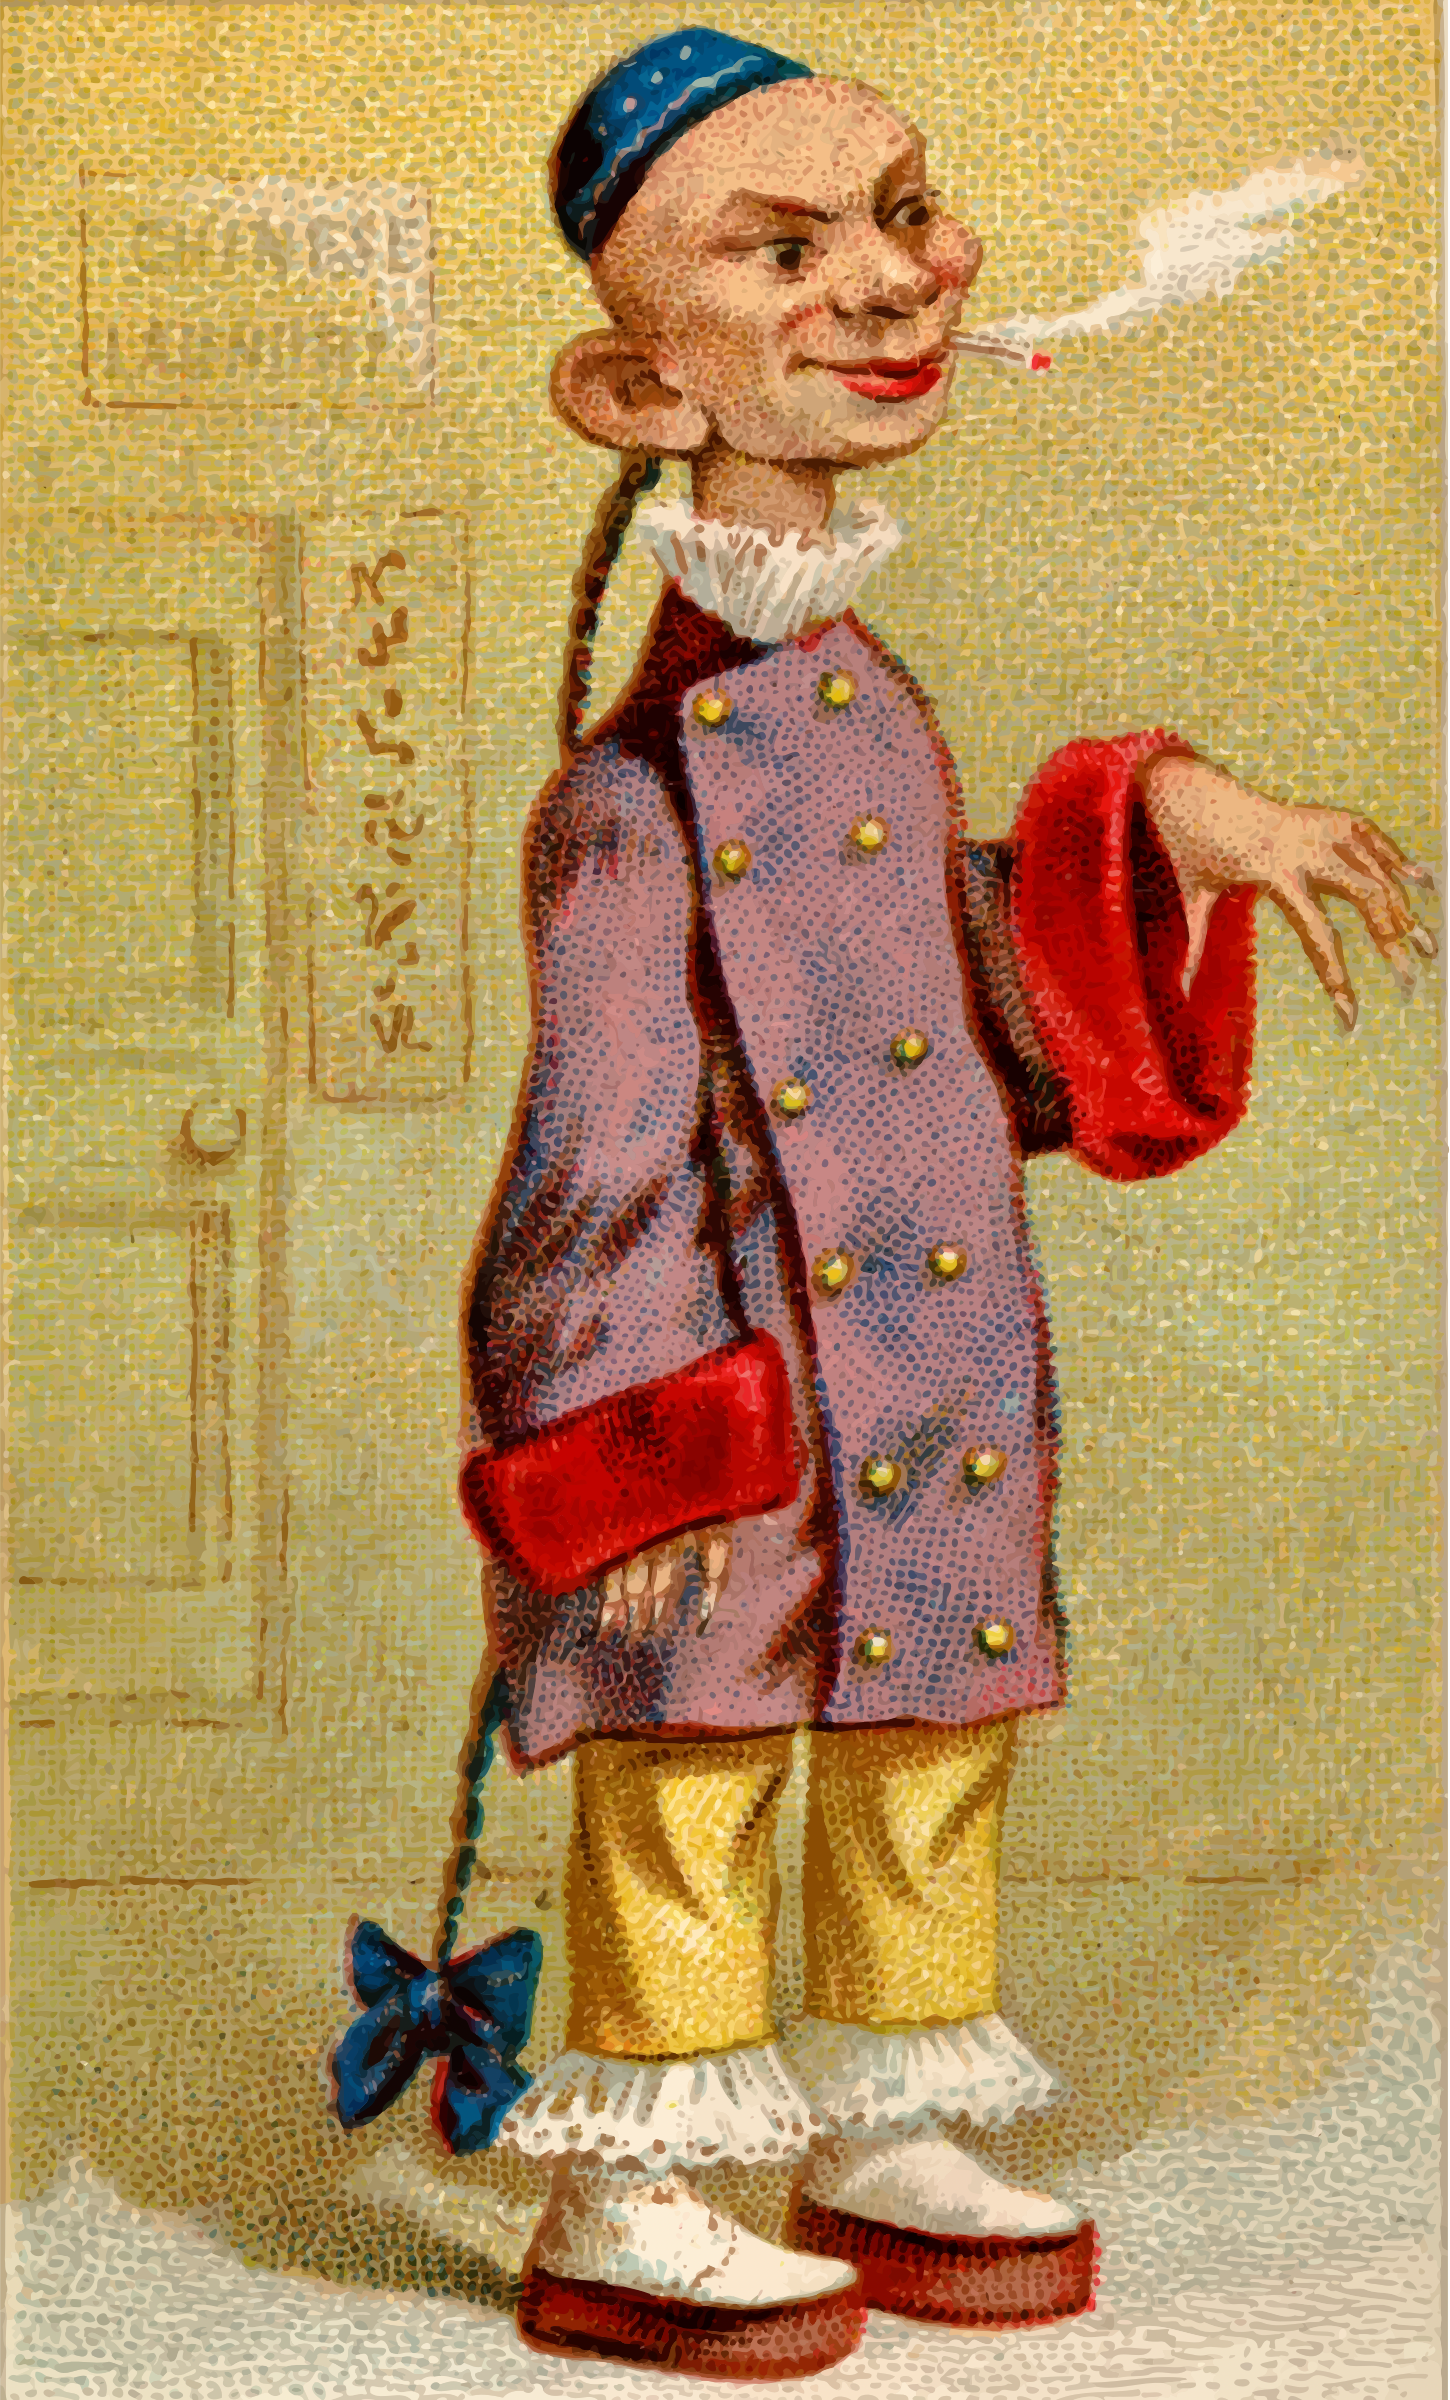 Cigarette card - Chinese by Firkin